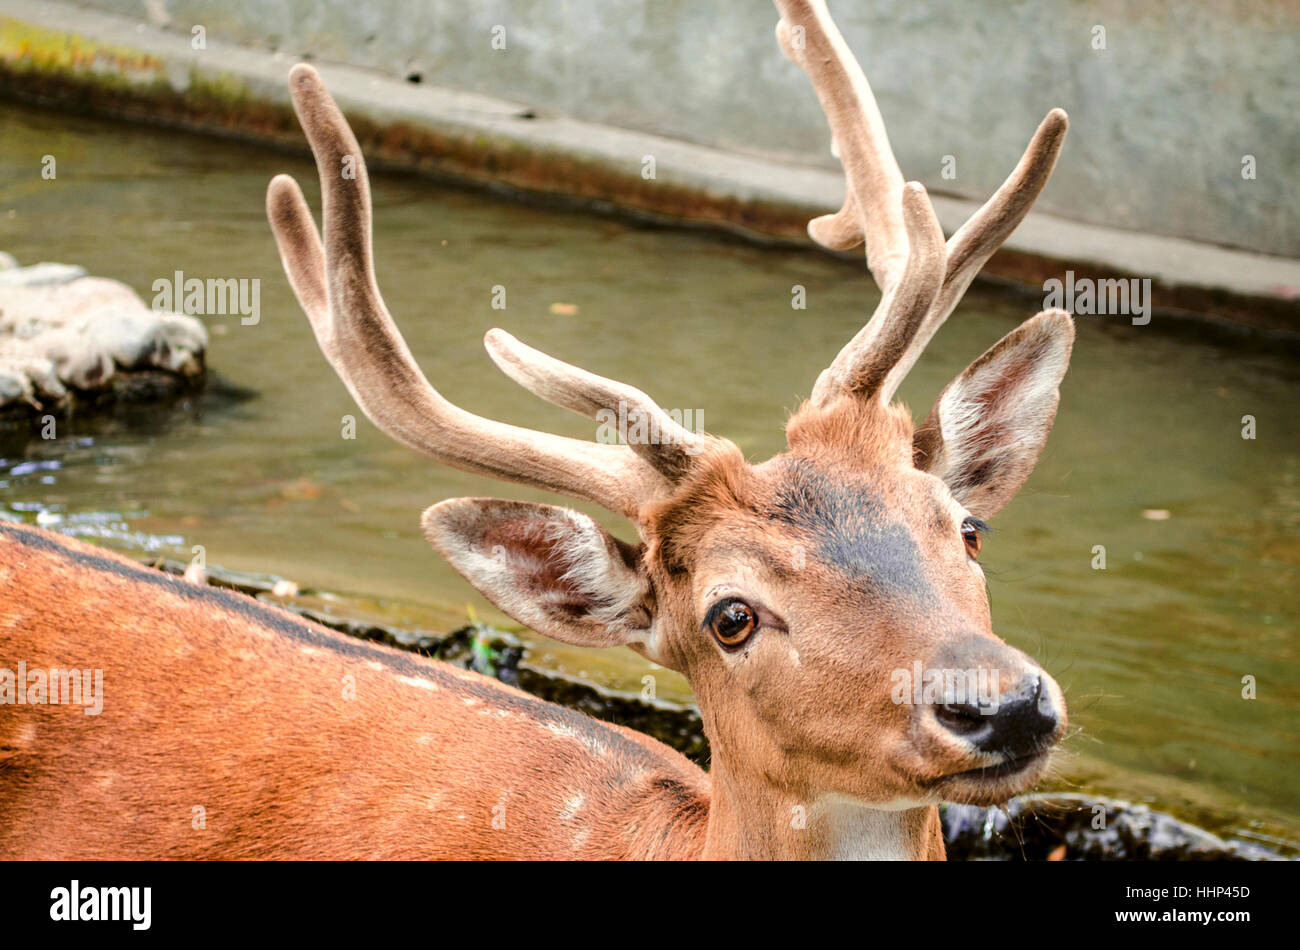 Young spotted redheaded deer with a wet muzzle at a watering place - Stock Image